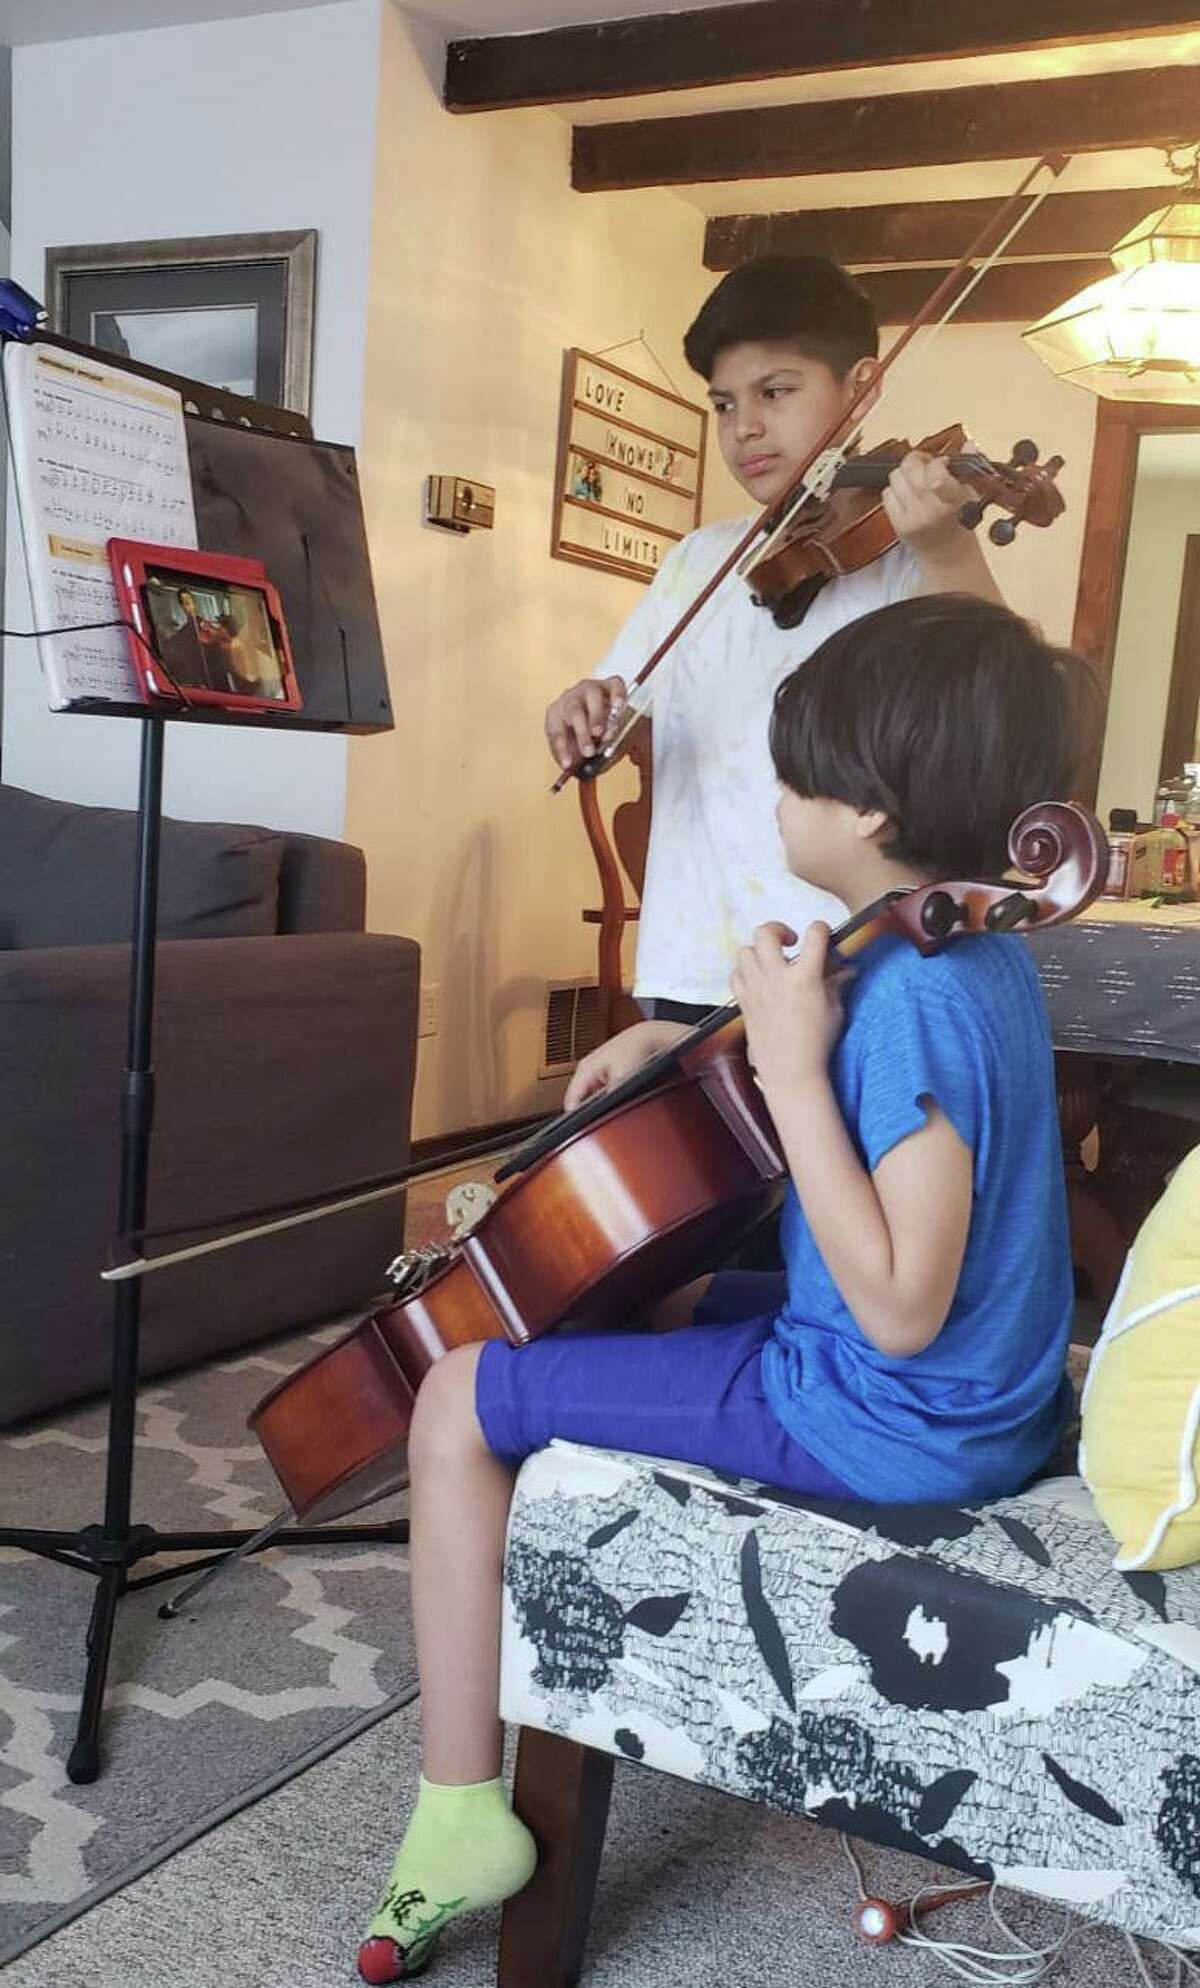 Siblings Nathaniel (left, violin) and Eduardo (right, cello) receiving an online music class from INTEMPO's teaching artist, Colin Benn. They are practicing the Brazilian repertoire for the upcoming online Cultural Crossover Concert on Saturday May 30 at 7 p.m. via Facebook and YouTube Live. INTEMPO's mission is to make intercultural music education and literacy relevant, accessible, and inclusive. It's students come from 4 different towns and 34 different schools in Fairfield County. To learn more, visit: www.intempo.org